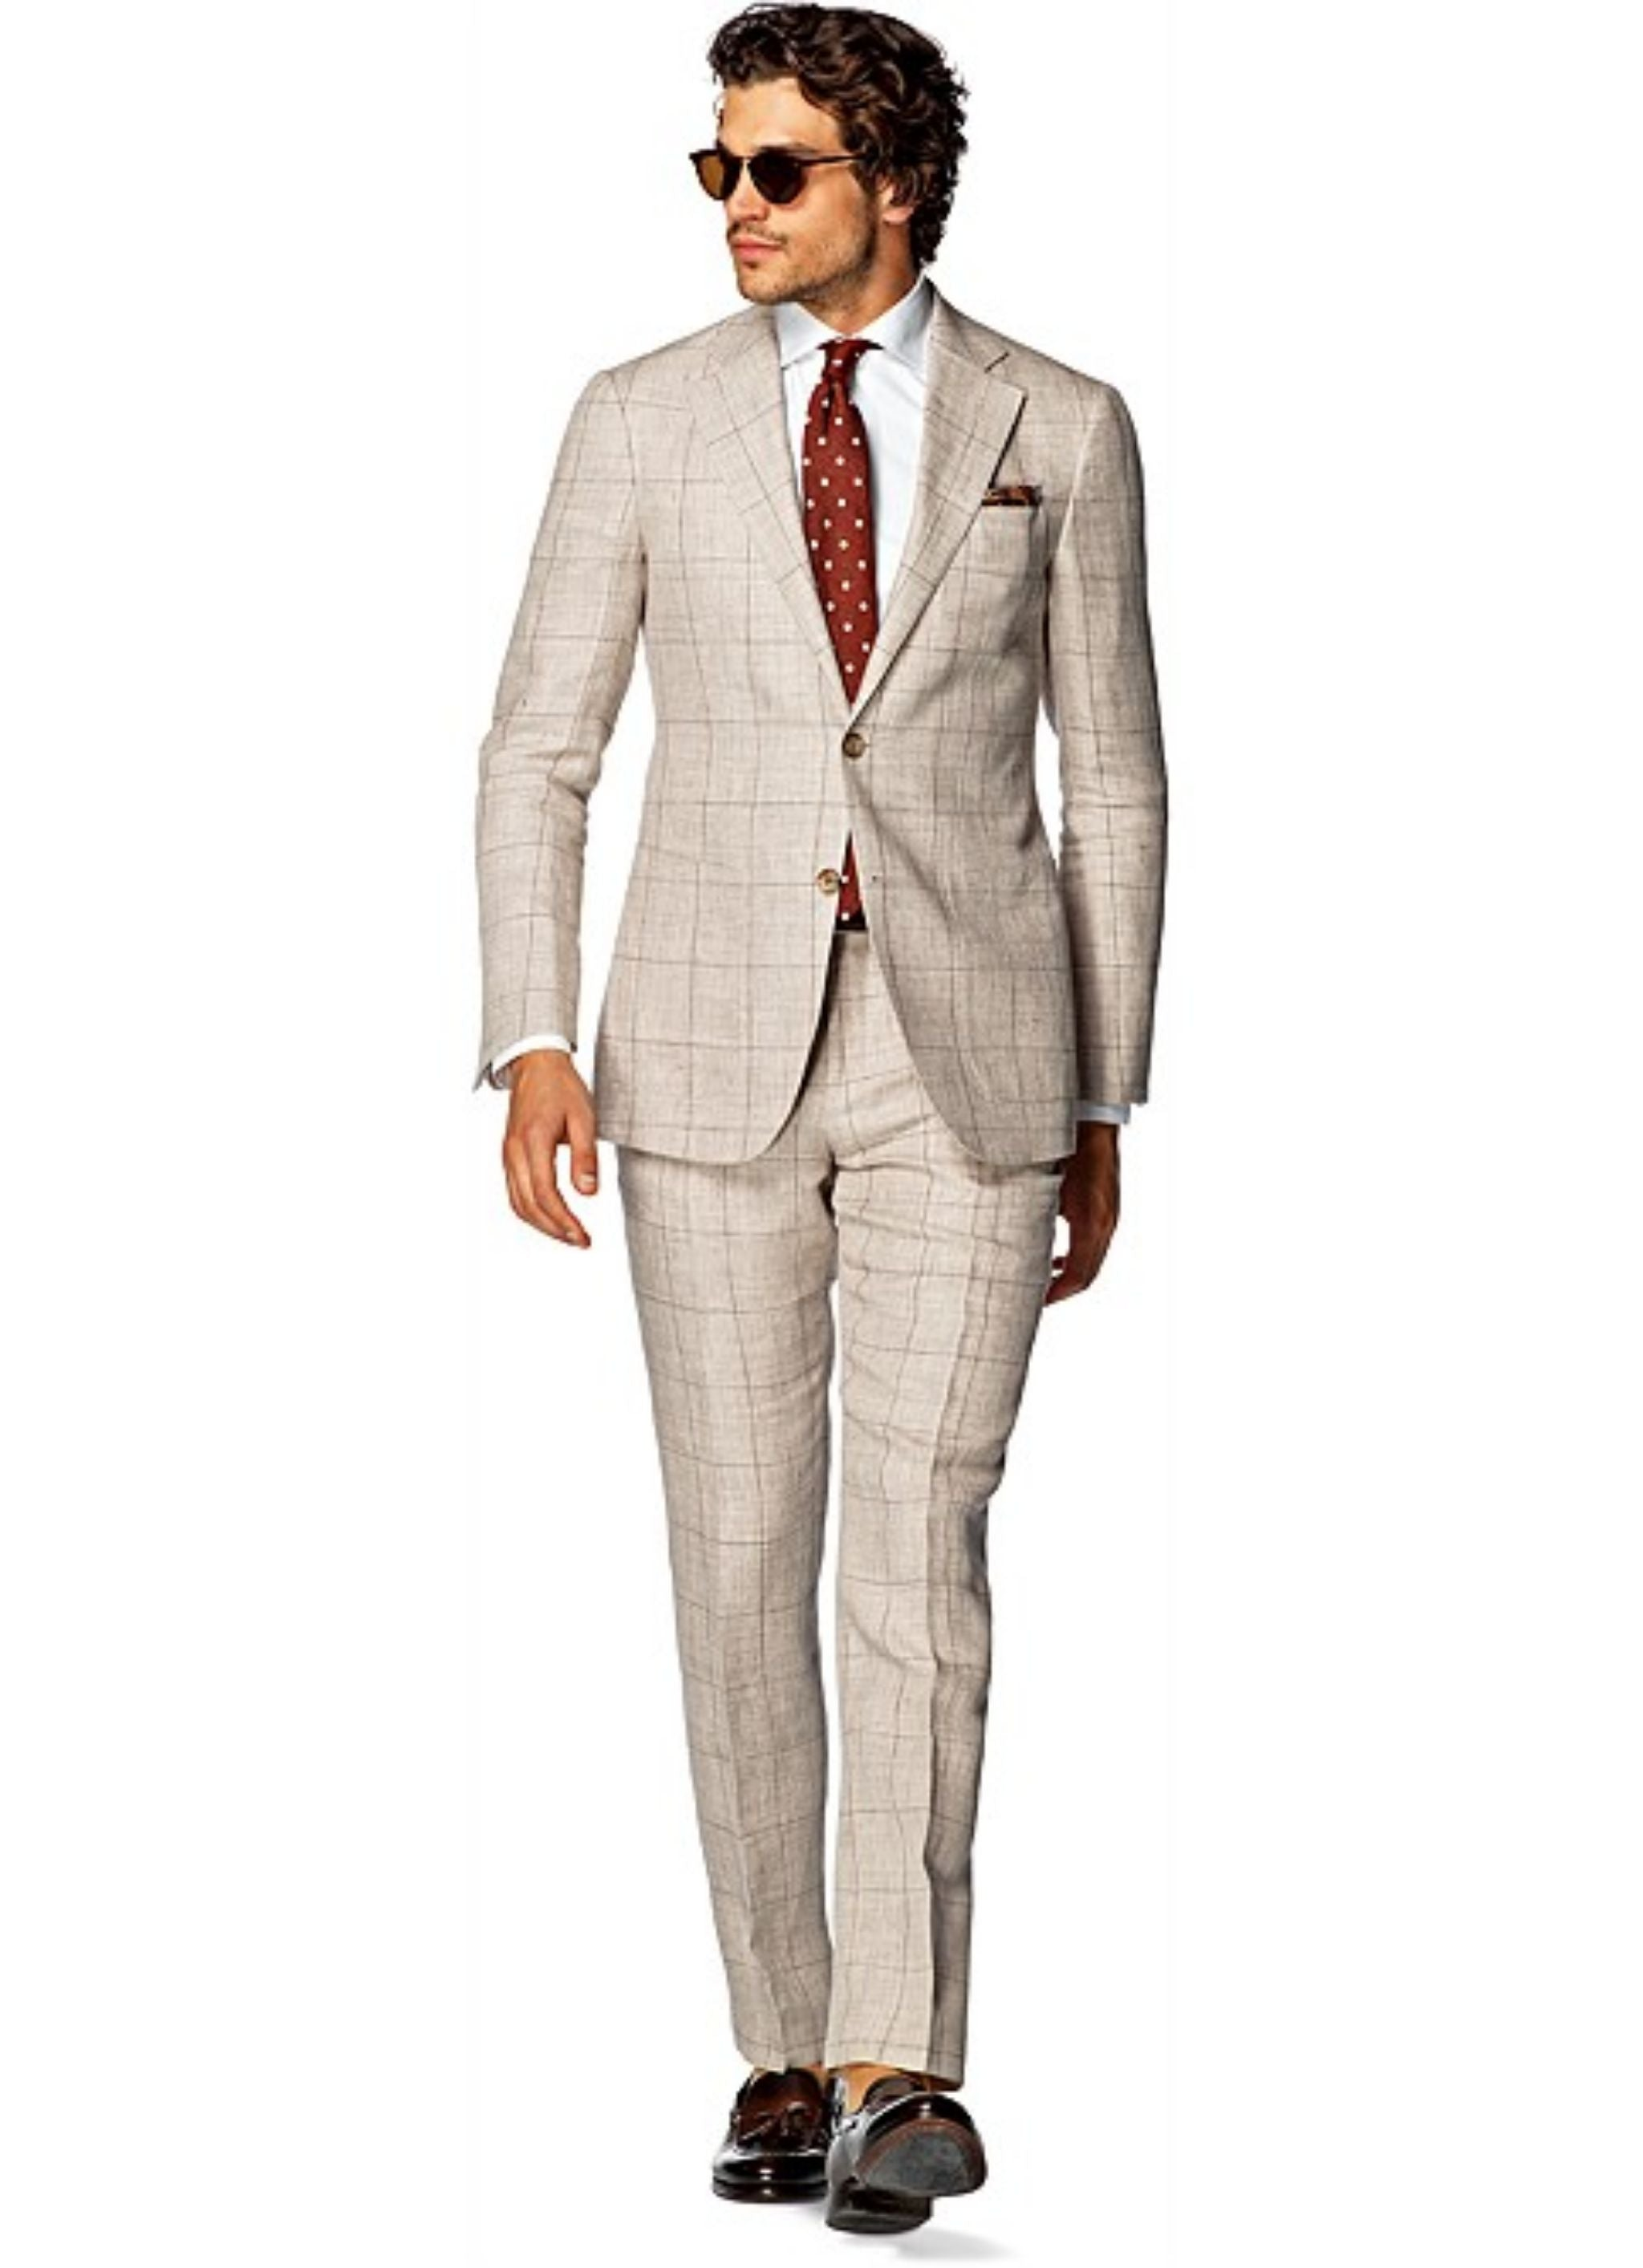 Linen windowpane suit - Suitsupply Hudson fit with polka dot tie